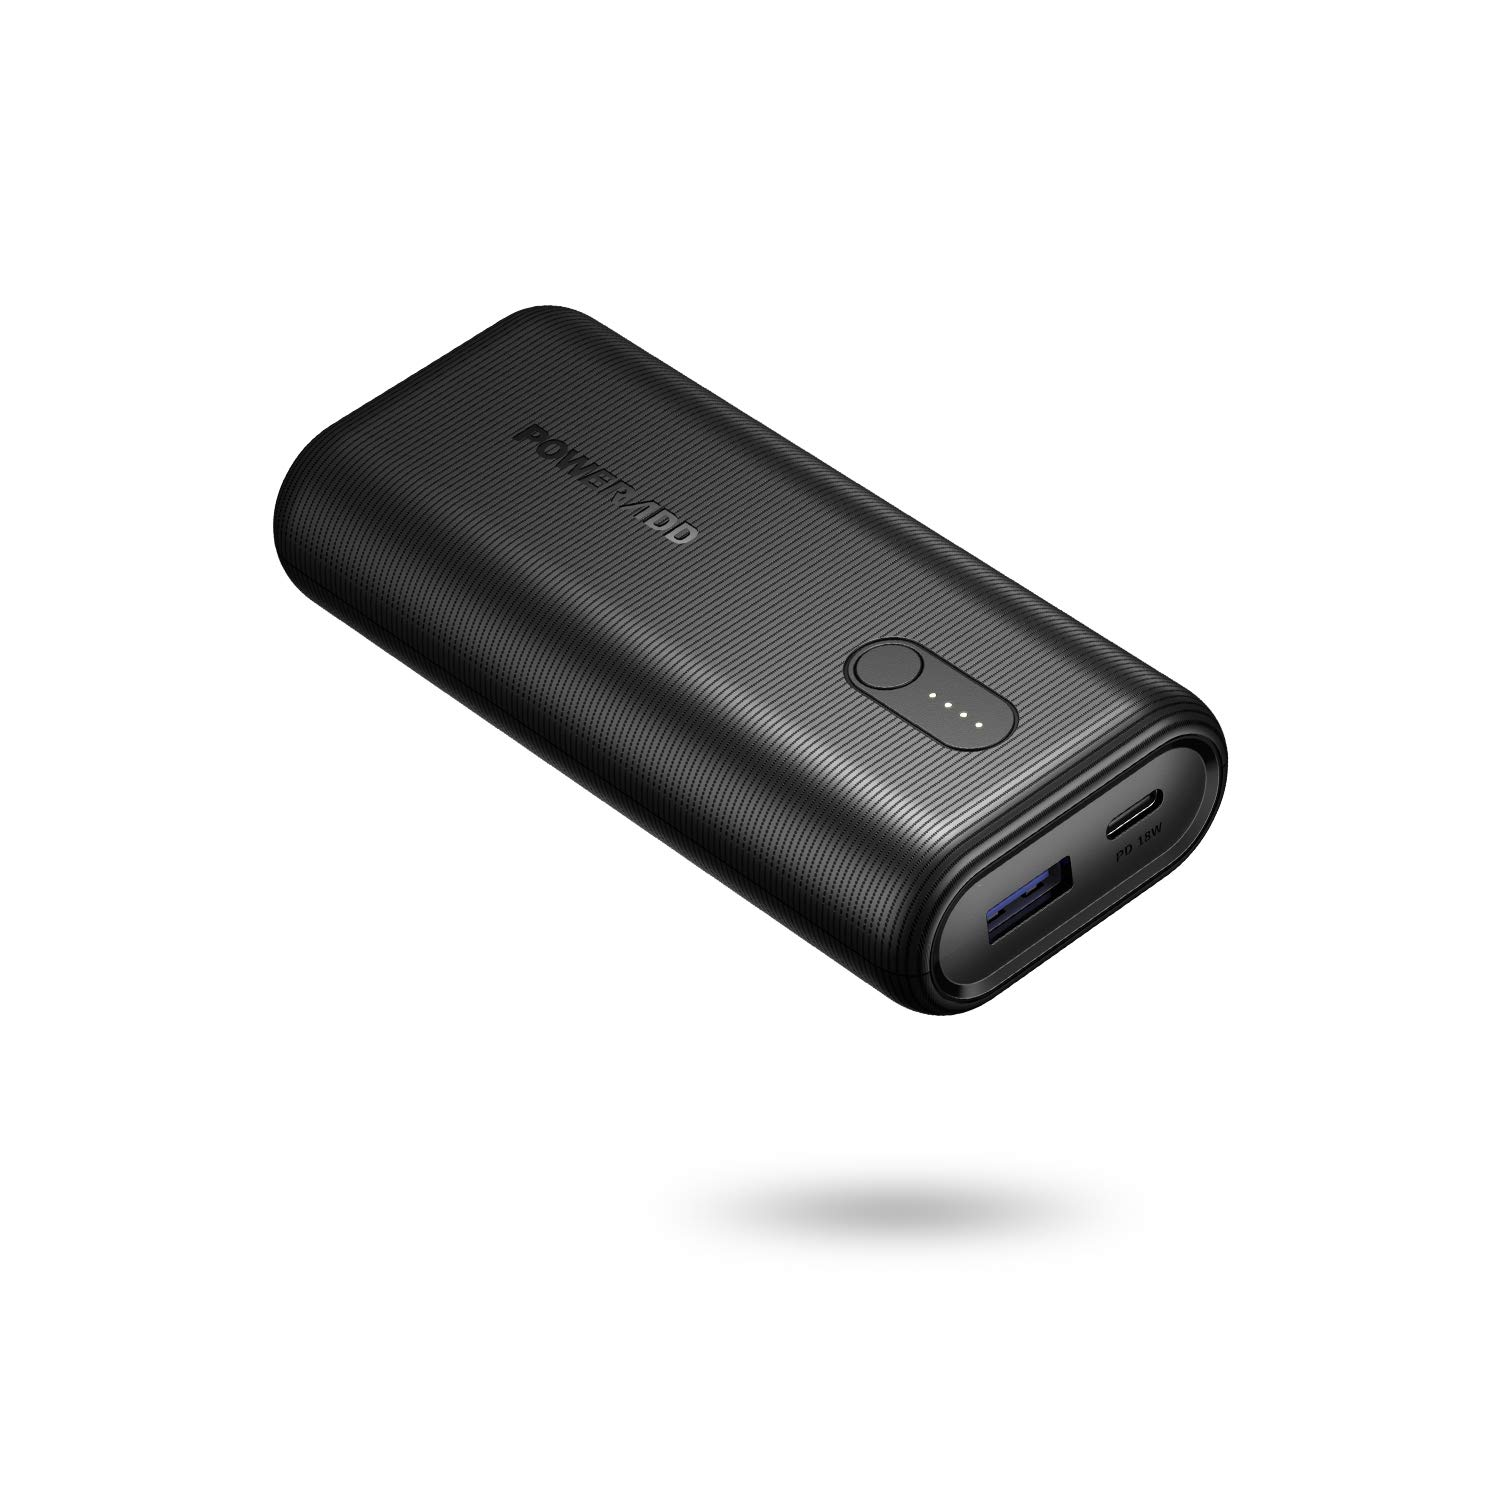 POWERADD EnergyCell Power Bank 10000 PD, Powerbank con Power Delivery 18W USB-C + USB Uscita da 10000 mAh, Ricarica Rapida per iPhone 8/11/11Pro/X/XS/XR, Samsung S10/S9/S8, iPad PRO 10.5/11 e Altri